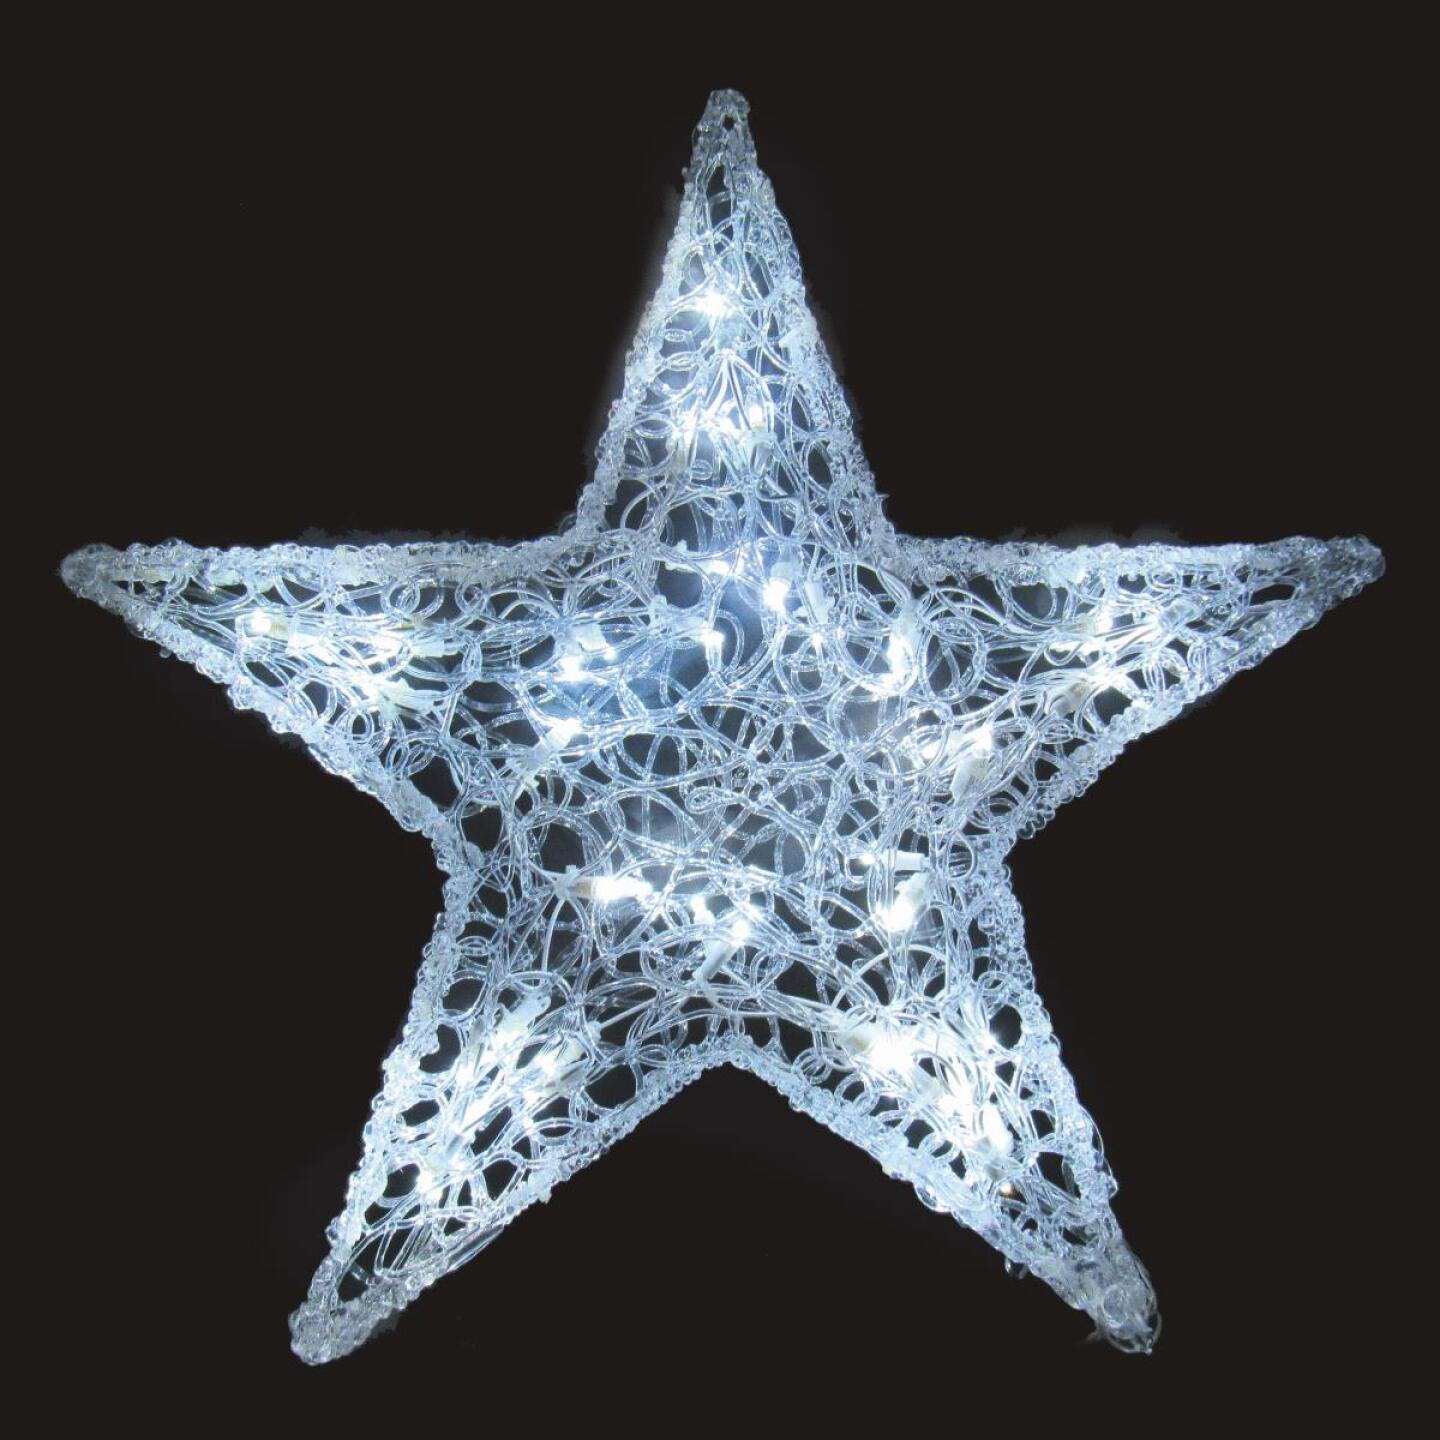 J Hofert 24 In. LED Lighted Spun Glass Star Image 1